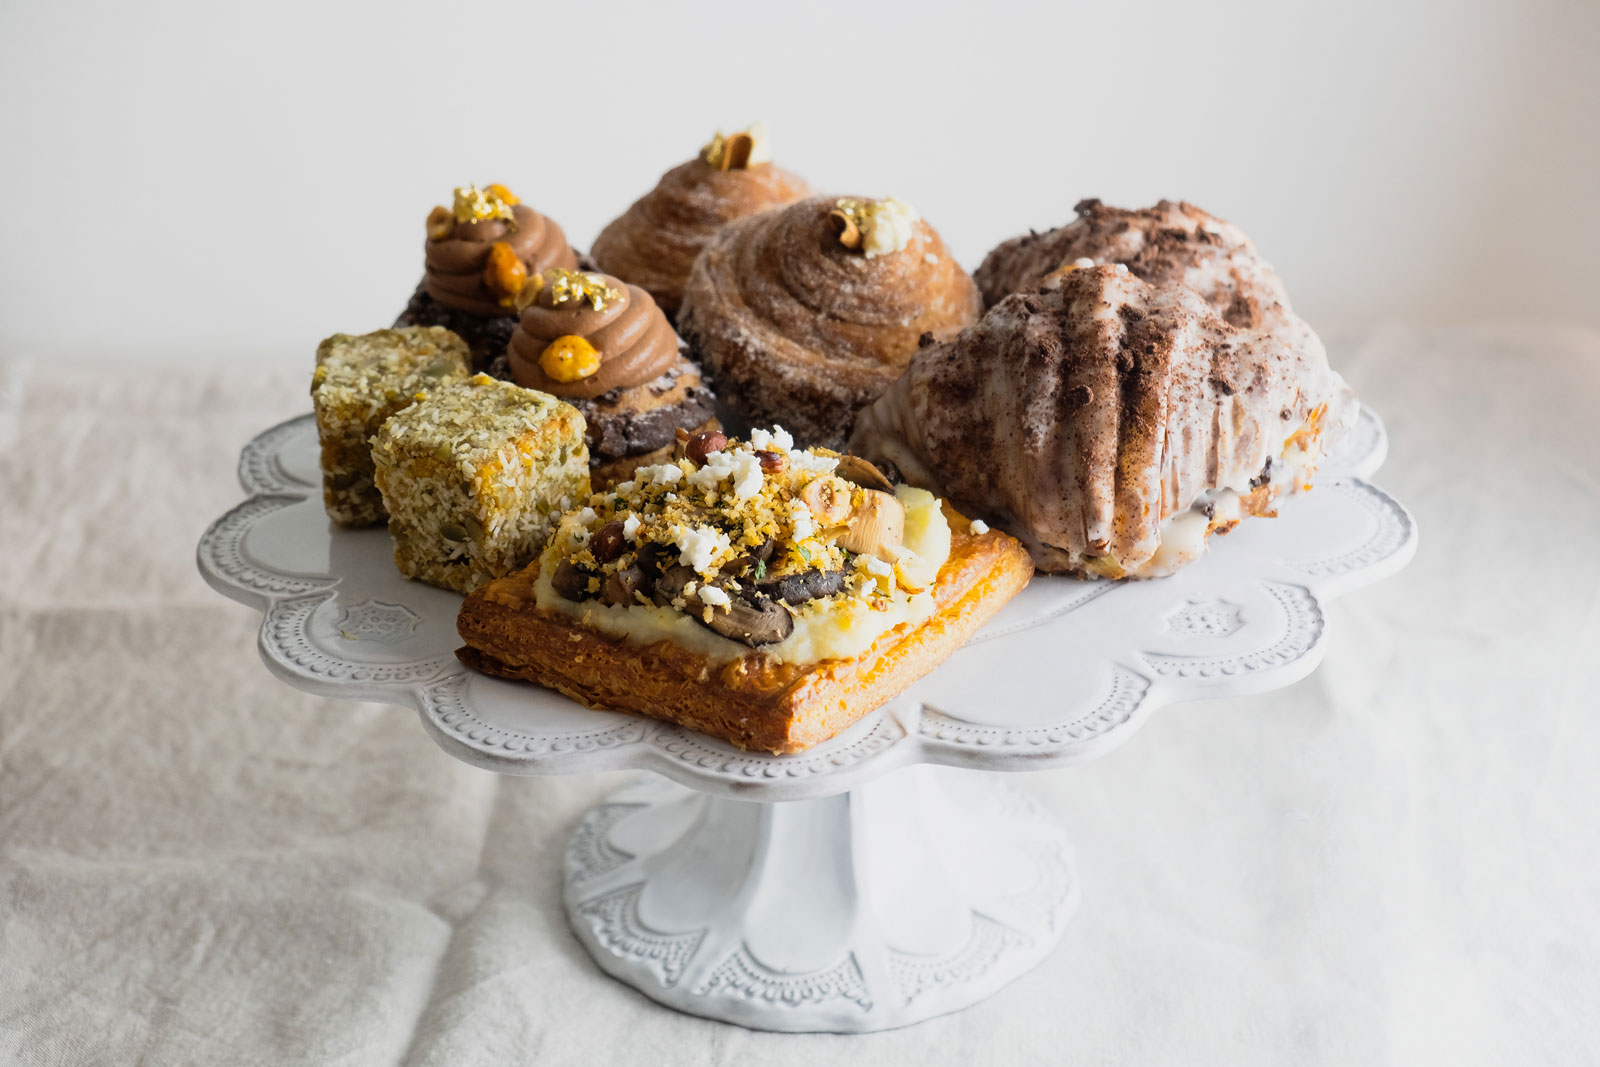 Beaucoup Bakery Launches New Fall Menu Inspired by Nostalgic Childhood Favourites